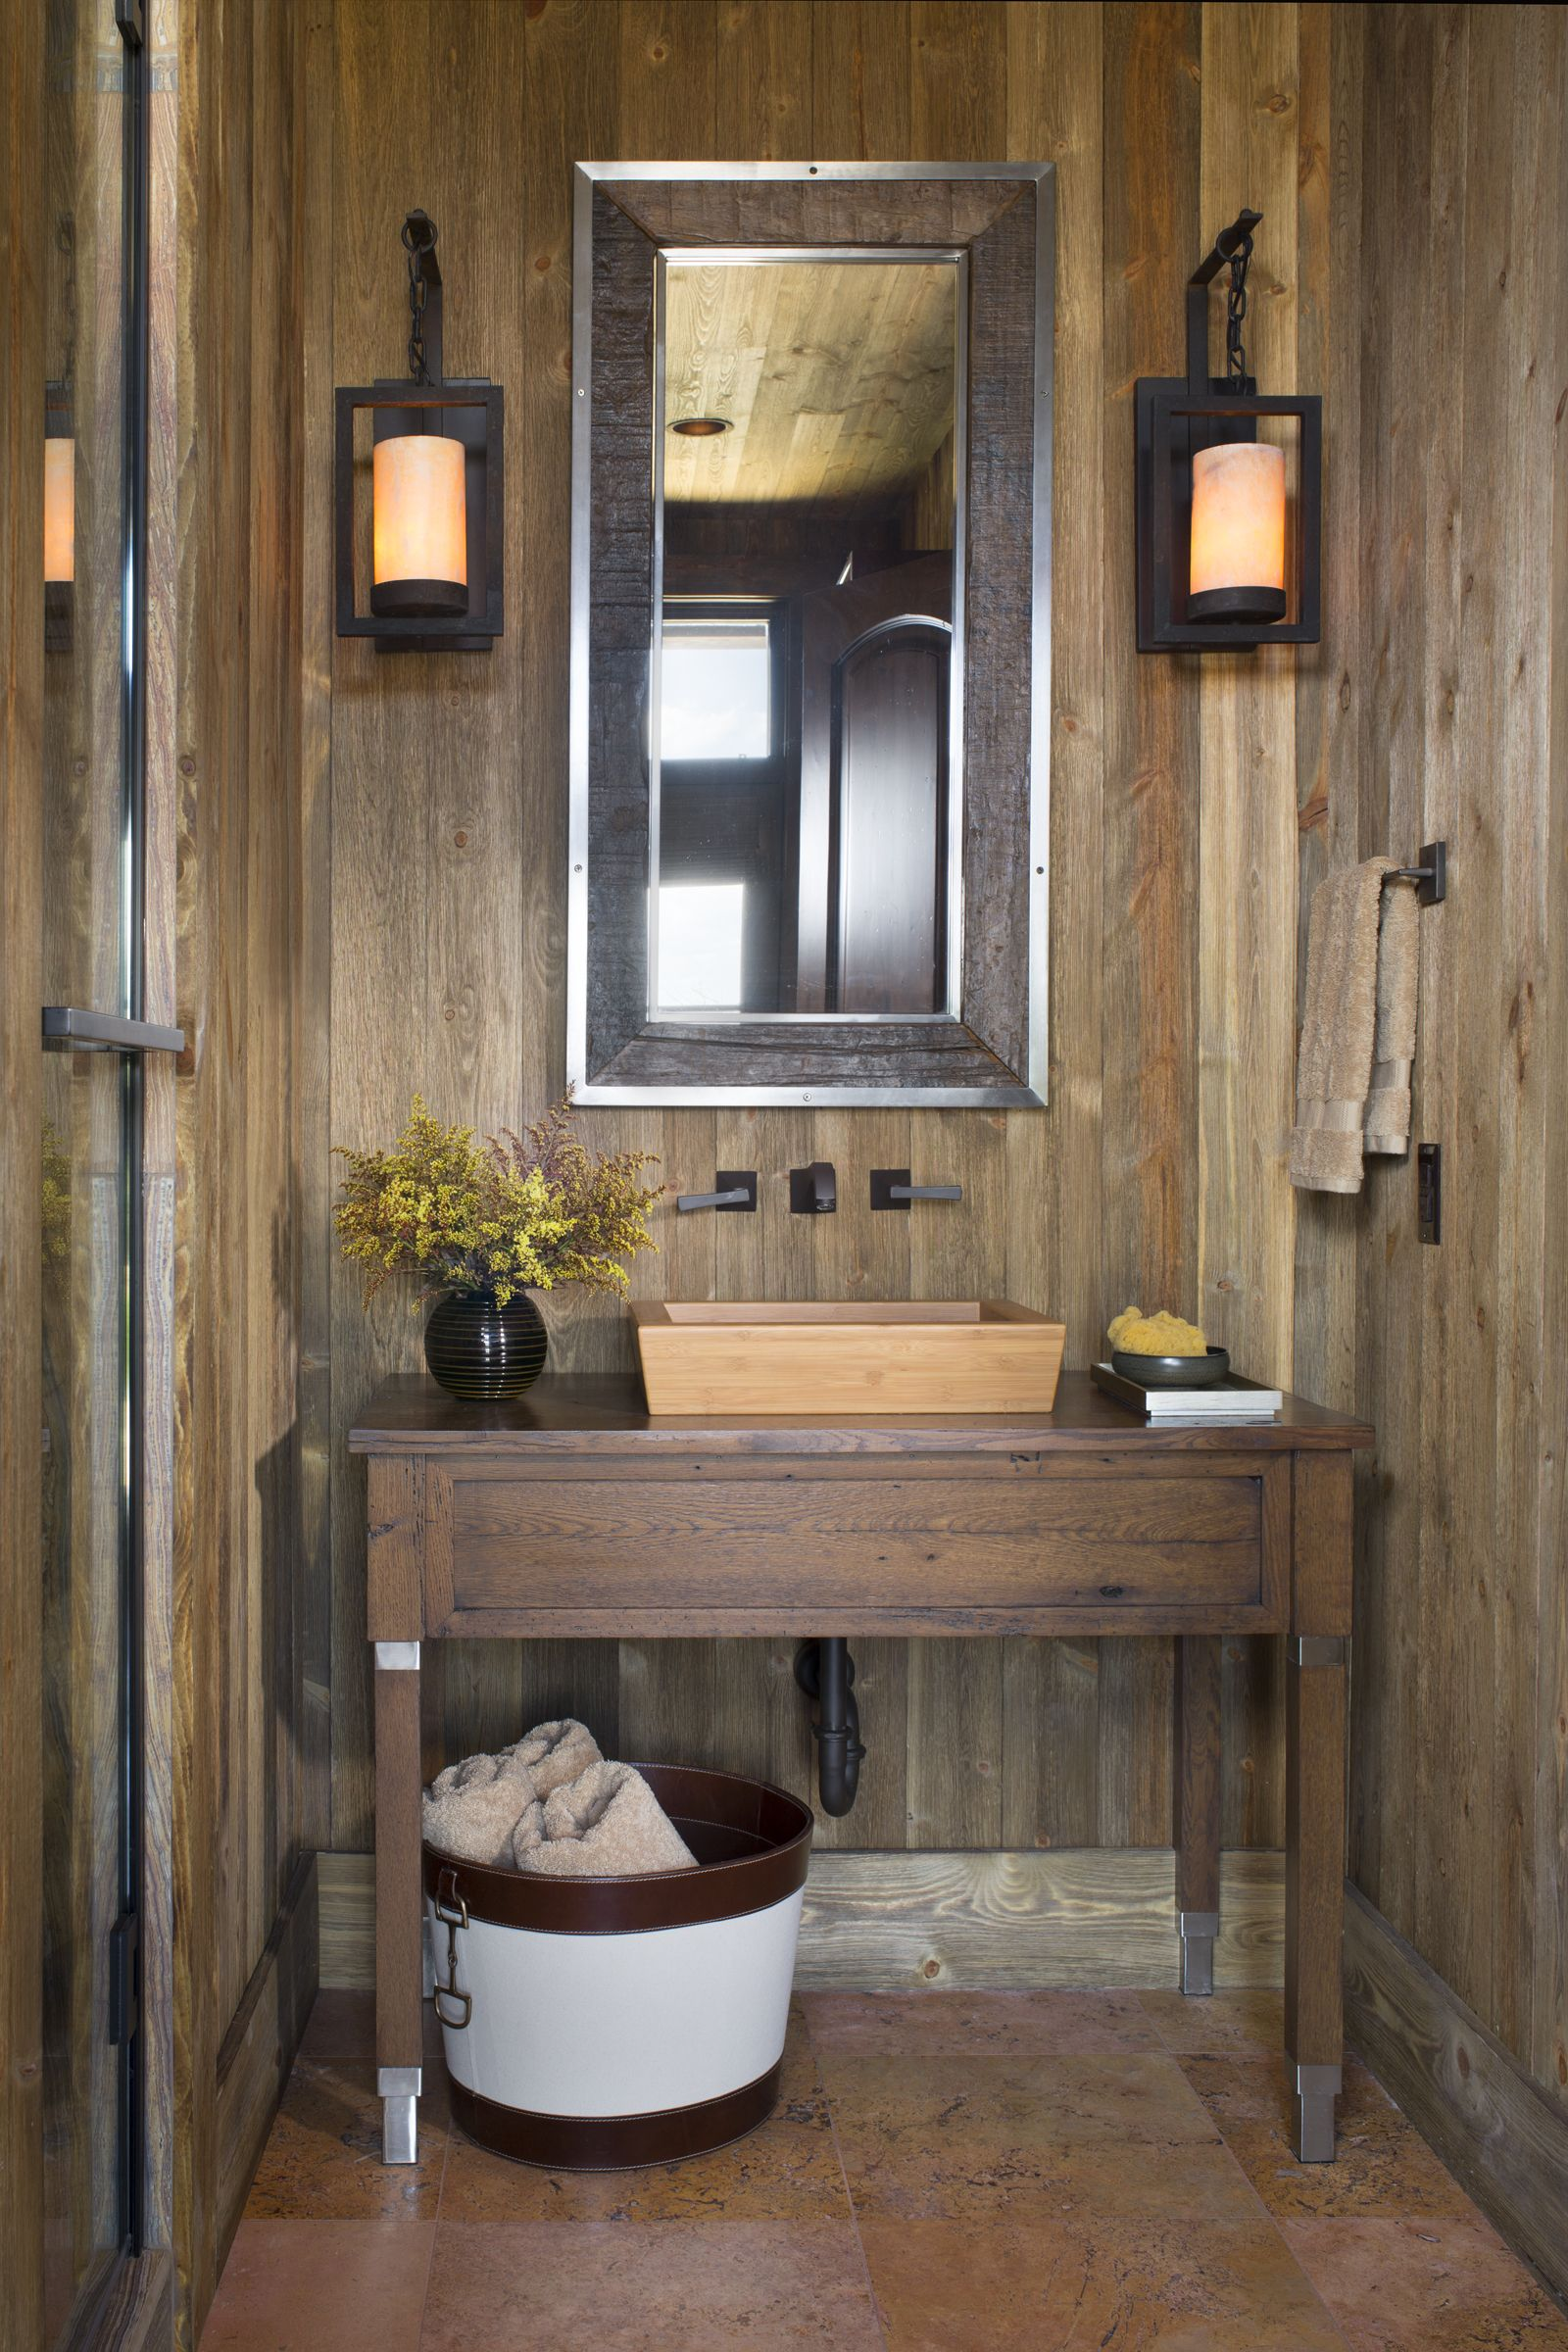 Merveilleux Powder Bath By Design House   Houston, TX. Wood Panel Walls, Wood And